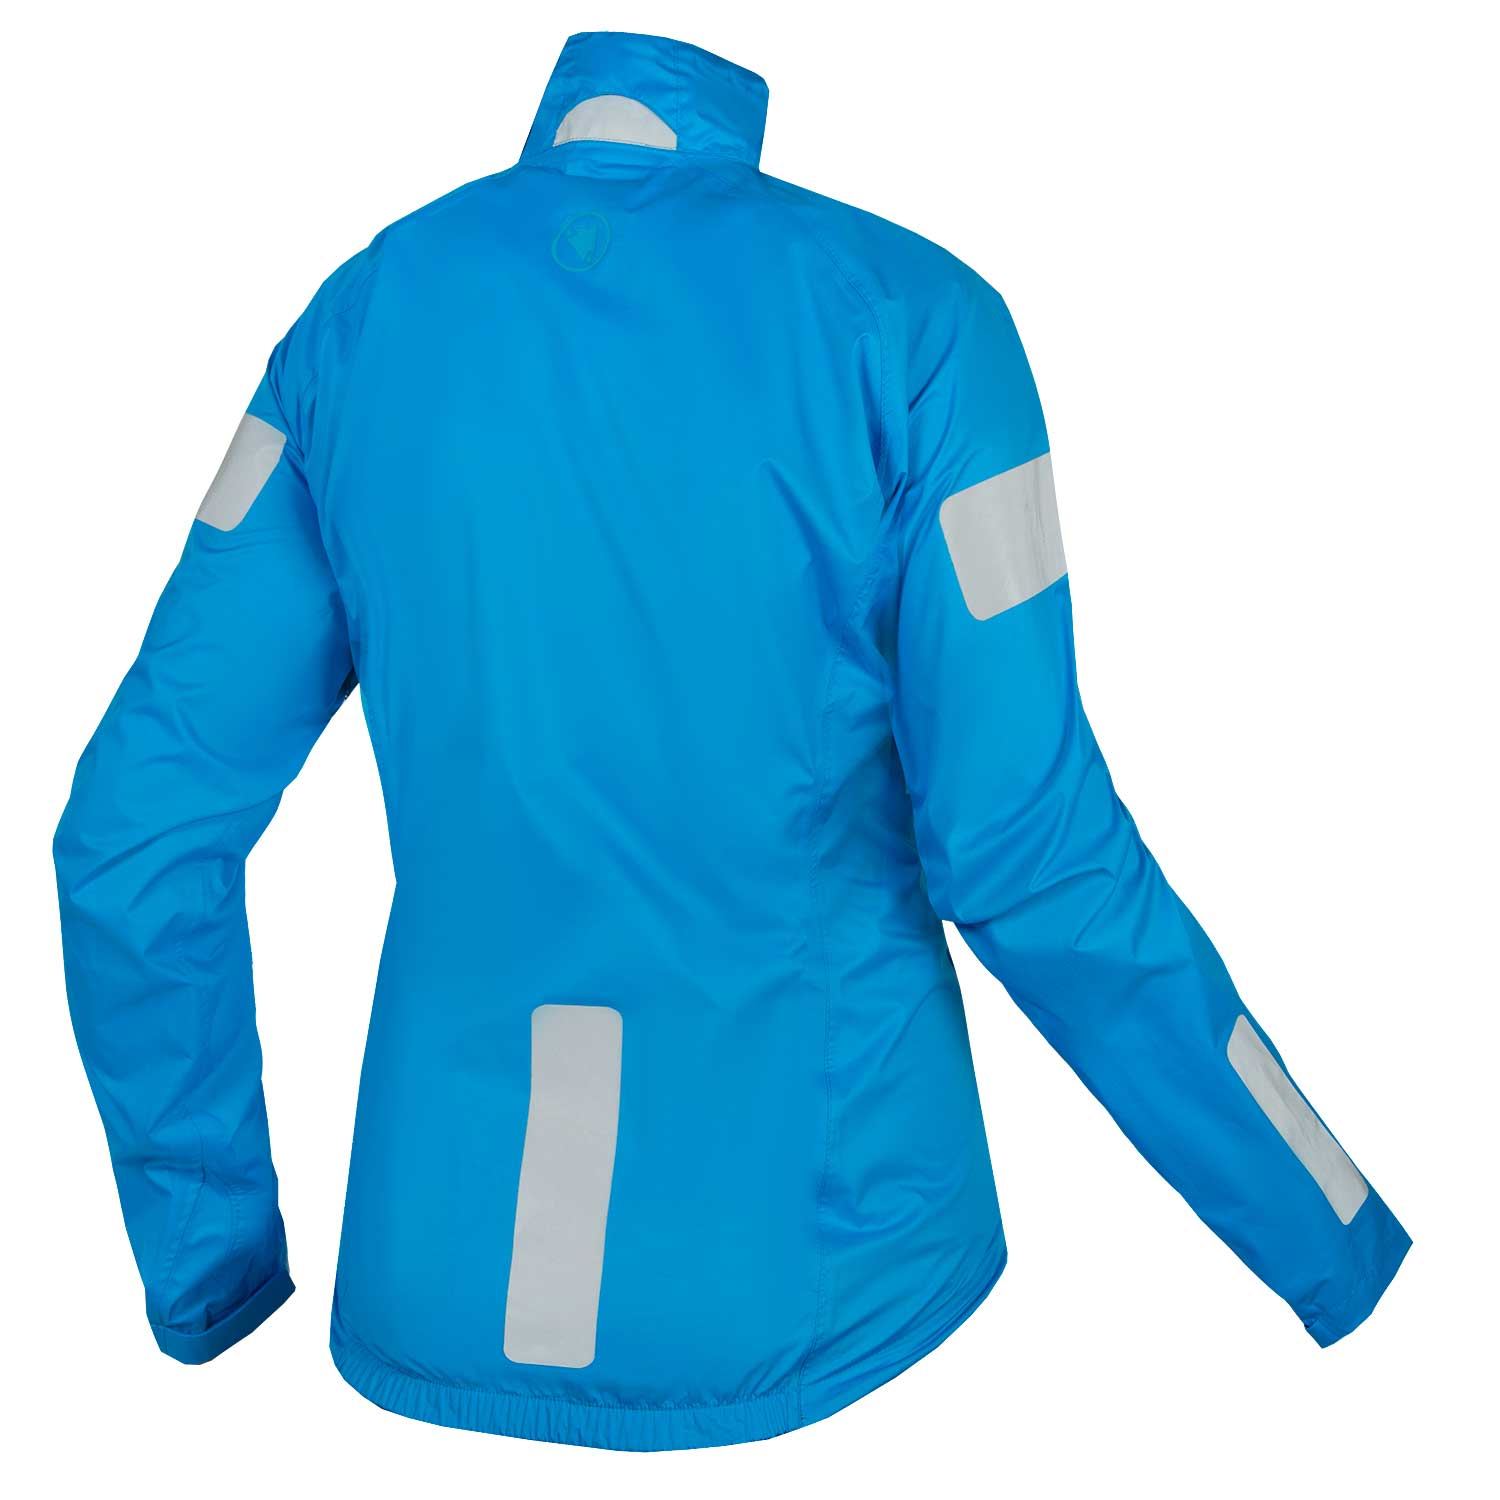 Wms Urban Luminite Jacket Hi-Viz Blue